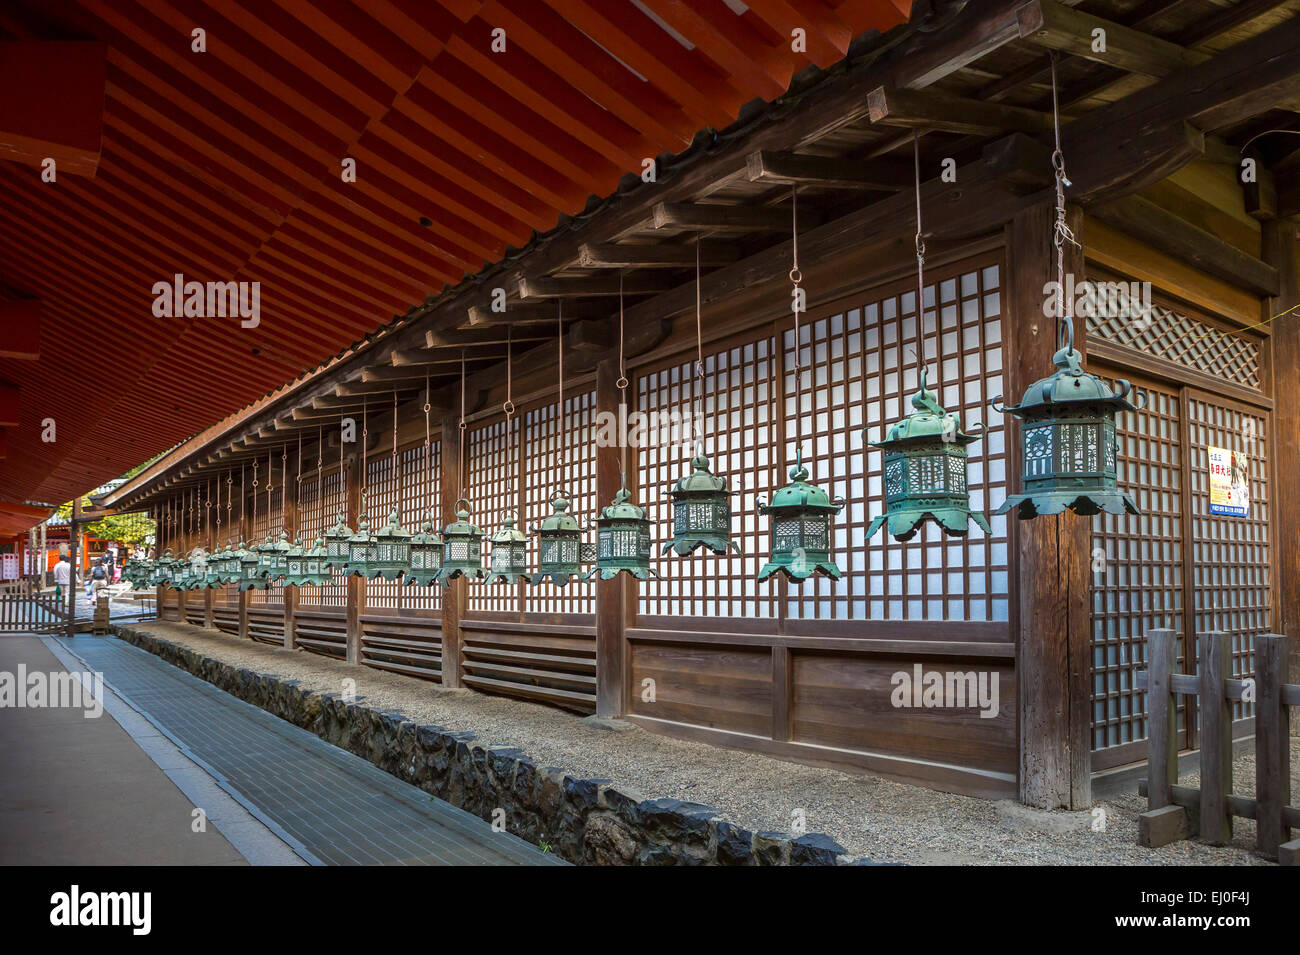 world heritage, City, Japan, Asia, Kansai, Kasuga, Nara, architecture, colourful, history, lanterns, no people, - Stock Image